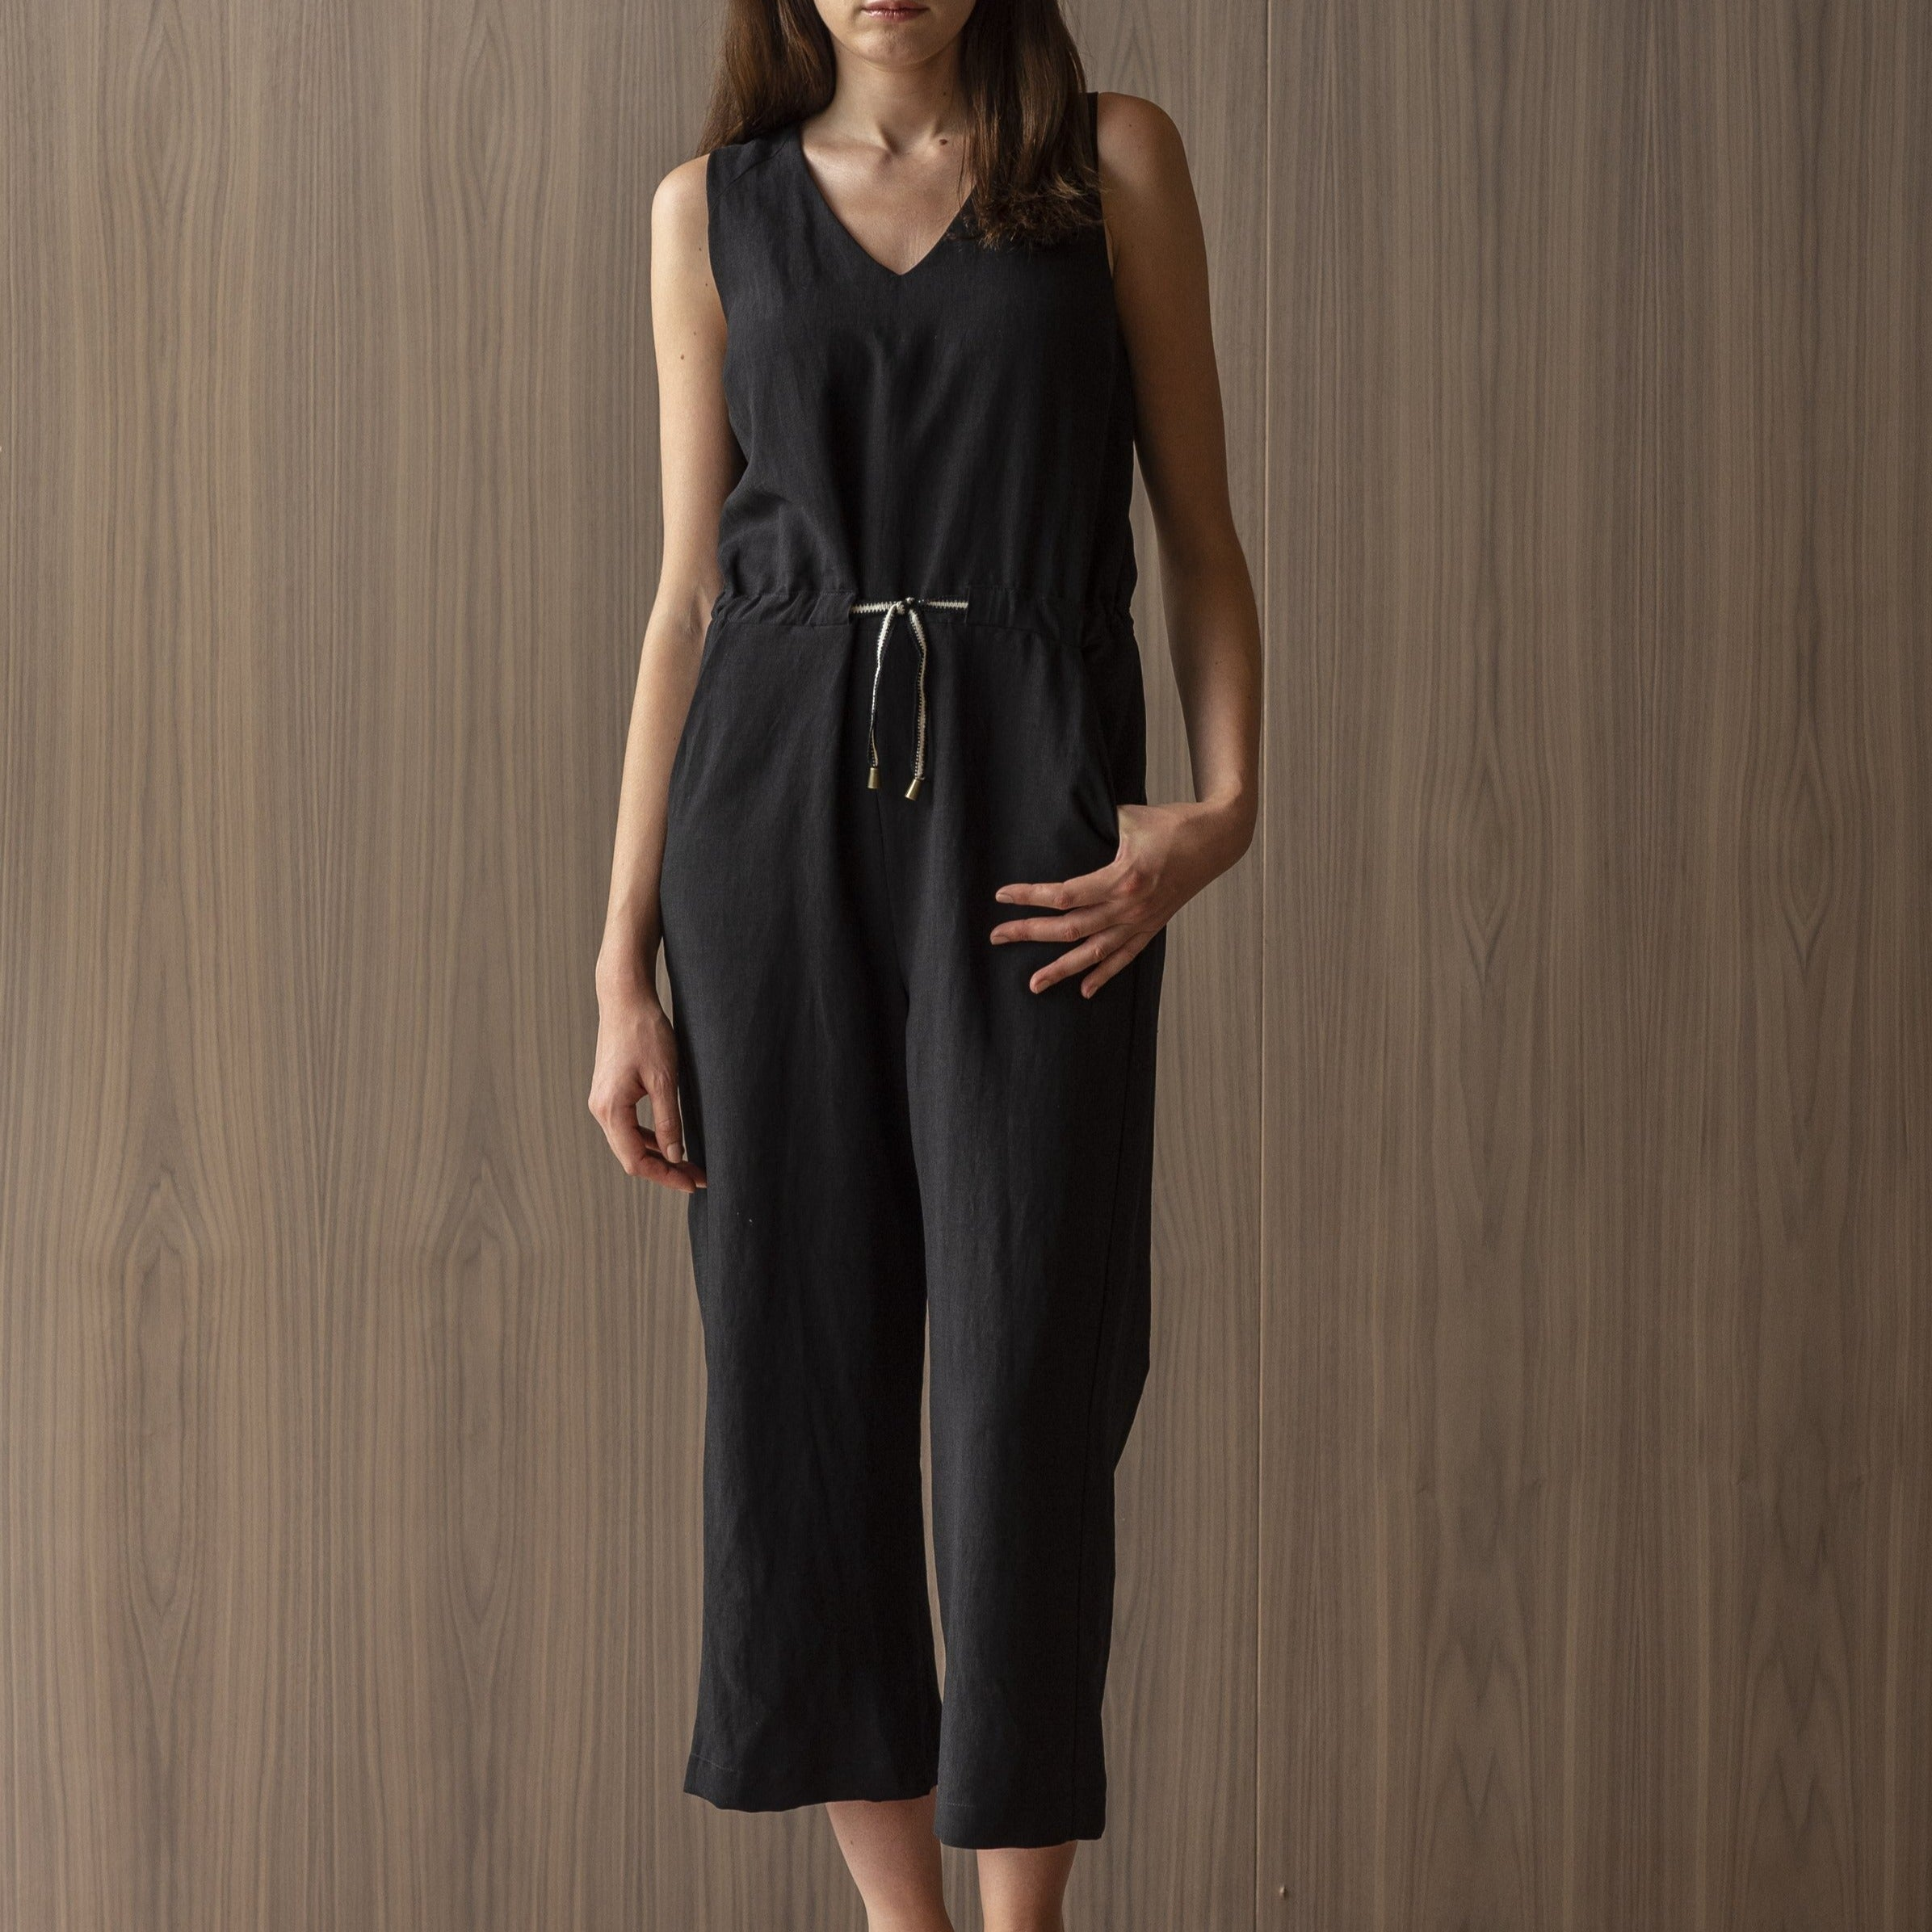 Bodybag by Jude // Bay Club Jumpsuit